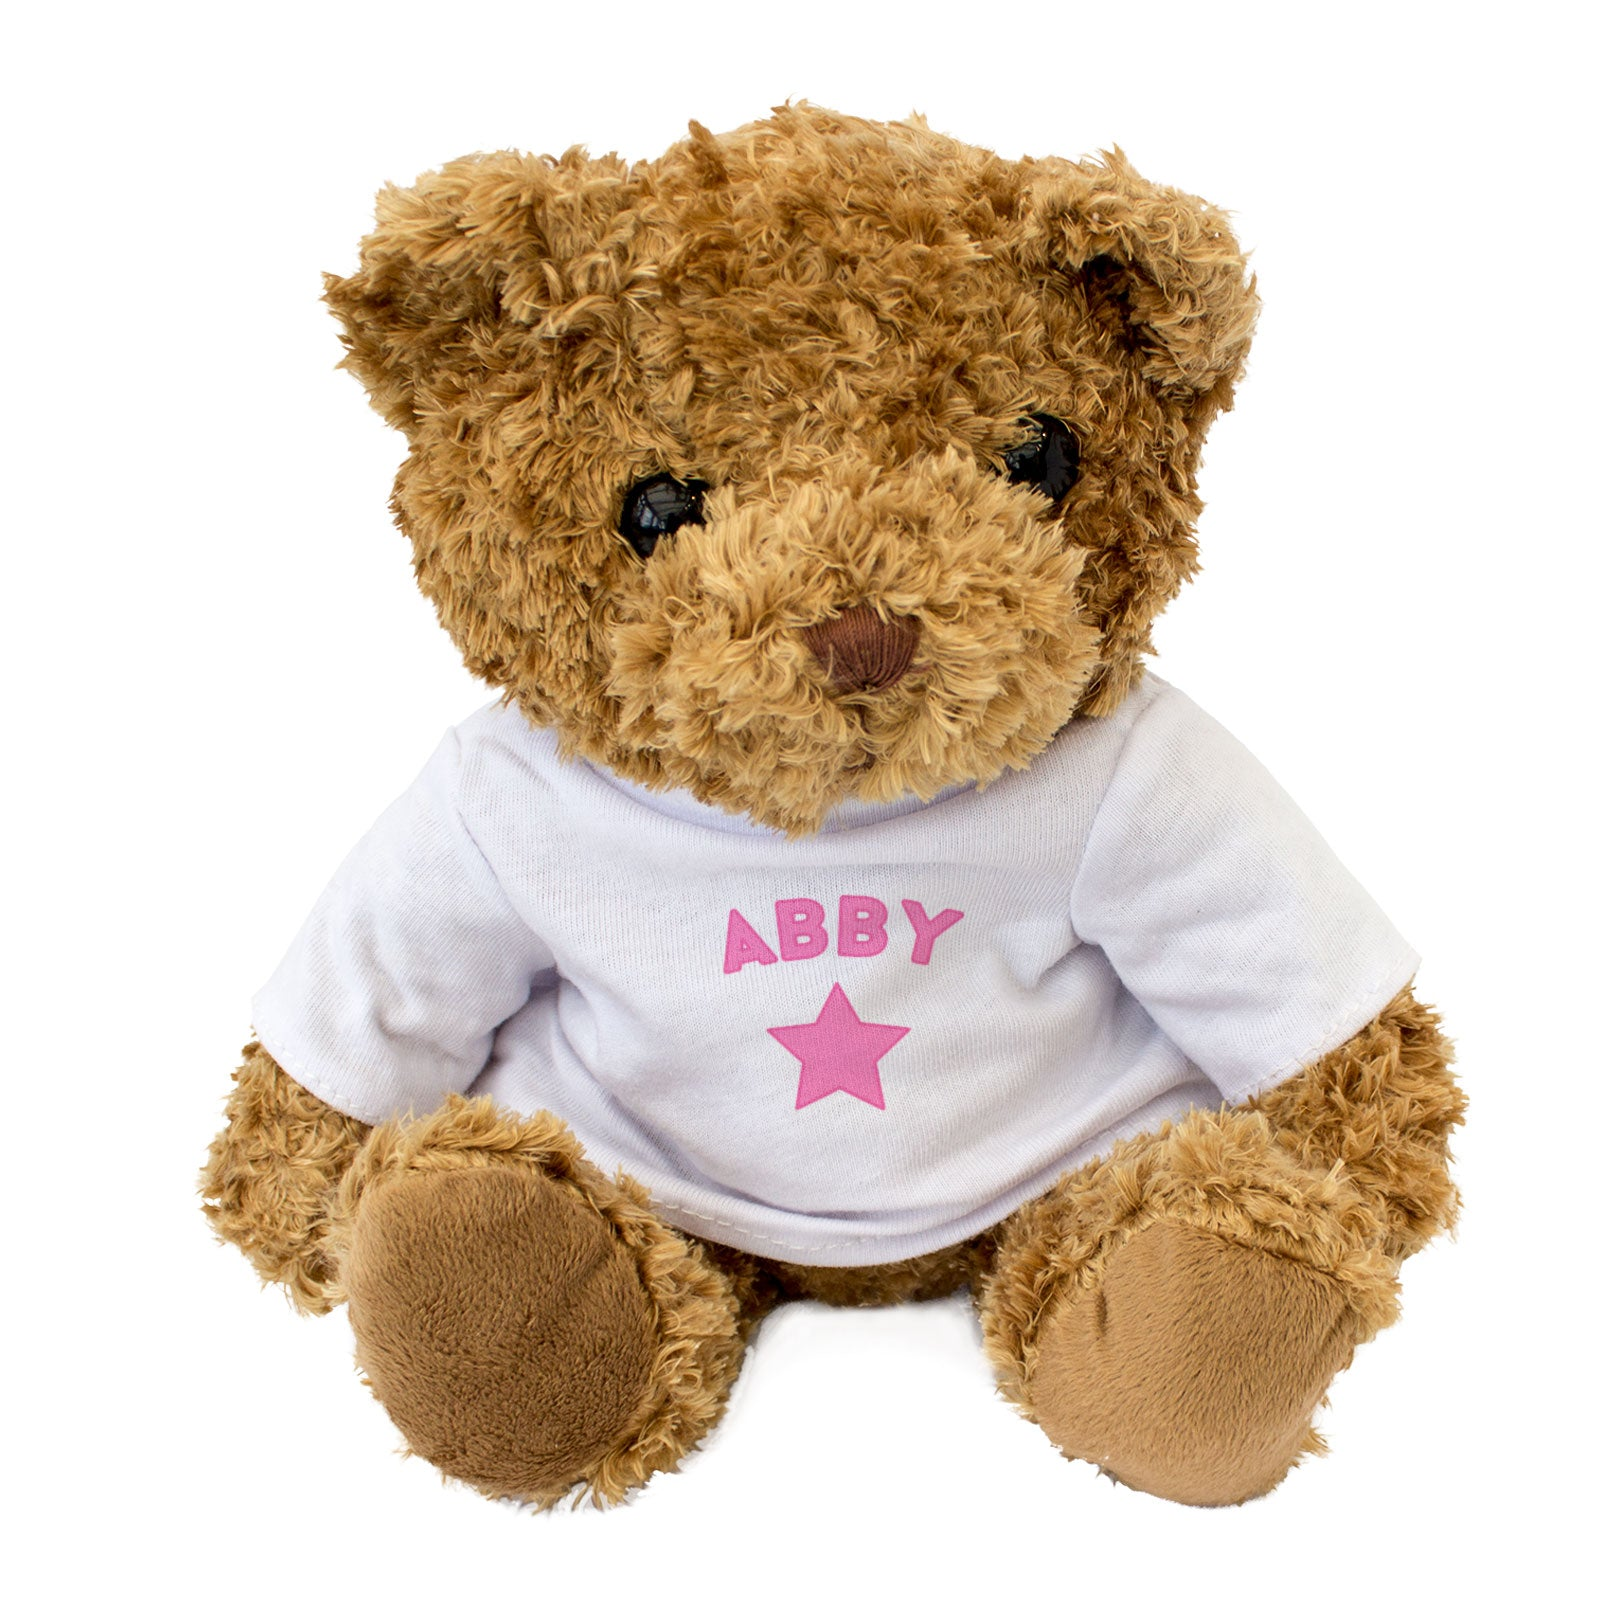 Abby Personalised Name Teddy Bear Christmas Birthday Gift